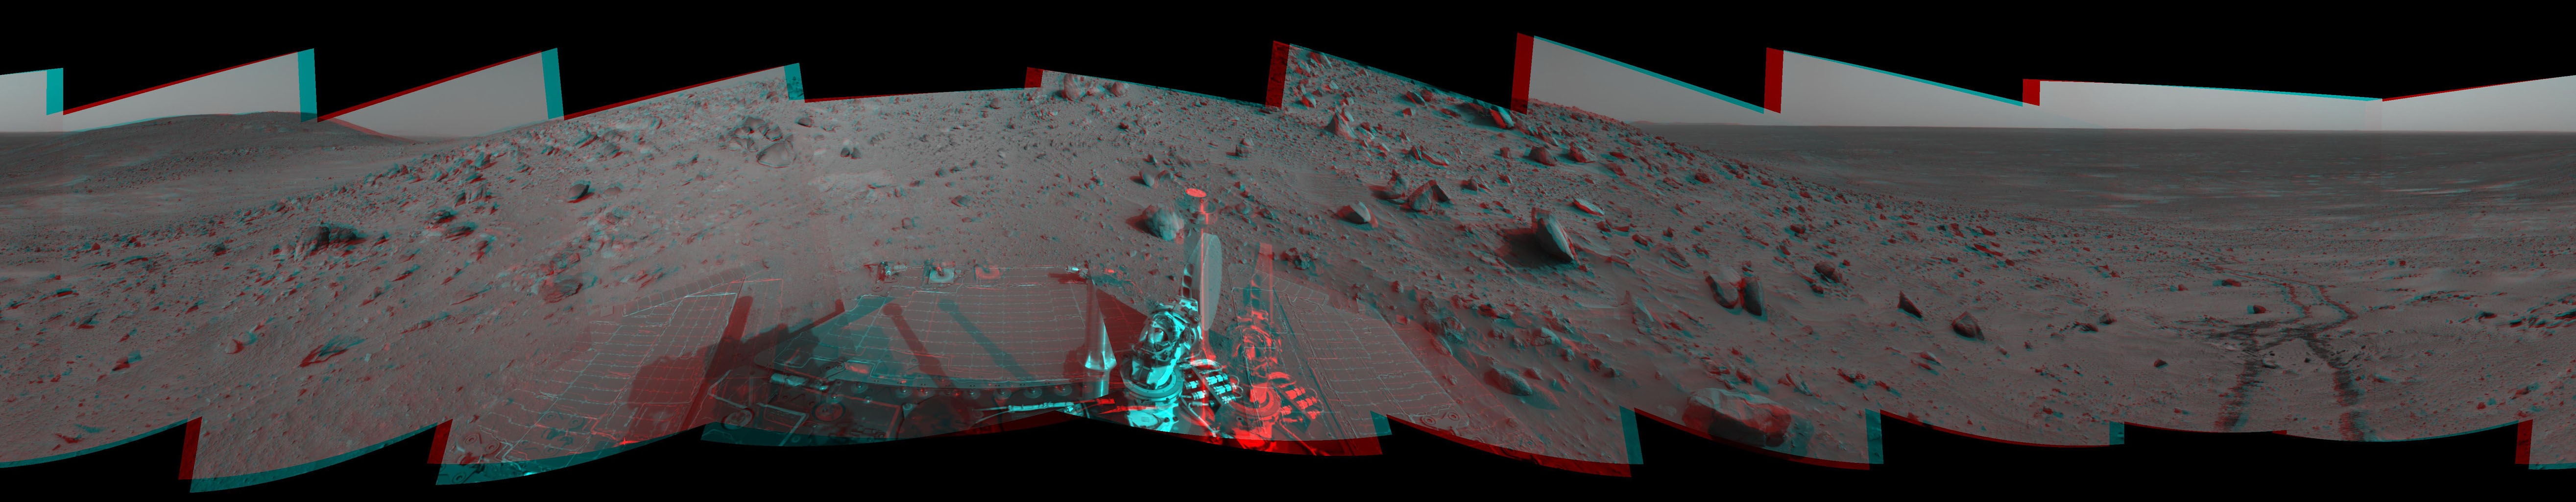 On Feb. 4, 2005, NASA's Mars Exploration Rover Spirit had driven about 13 meters (43 feet) uphill toward 'Cumberland Ridge.' 3-D glasses are necessary to view this image.